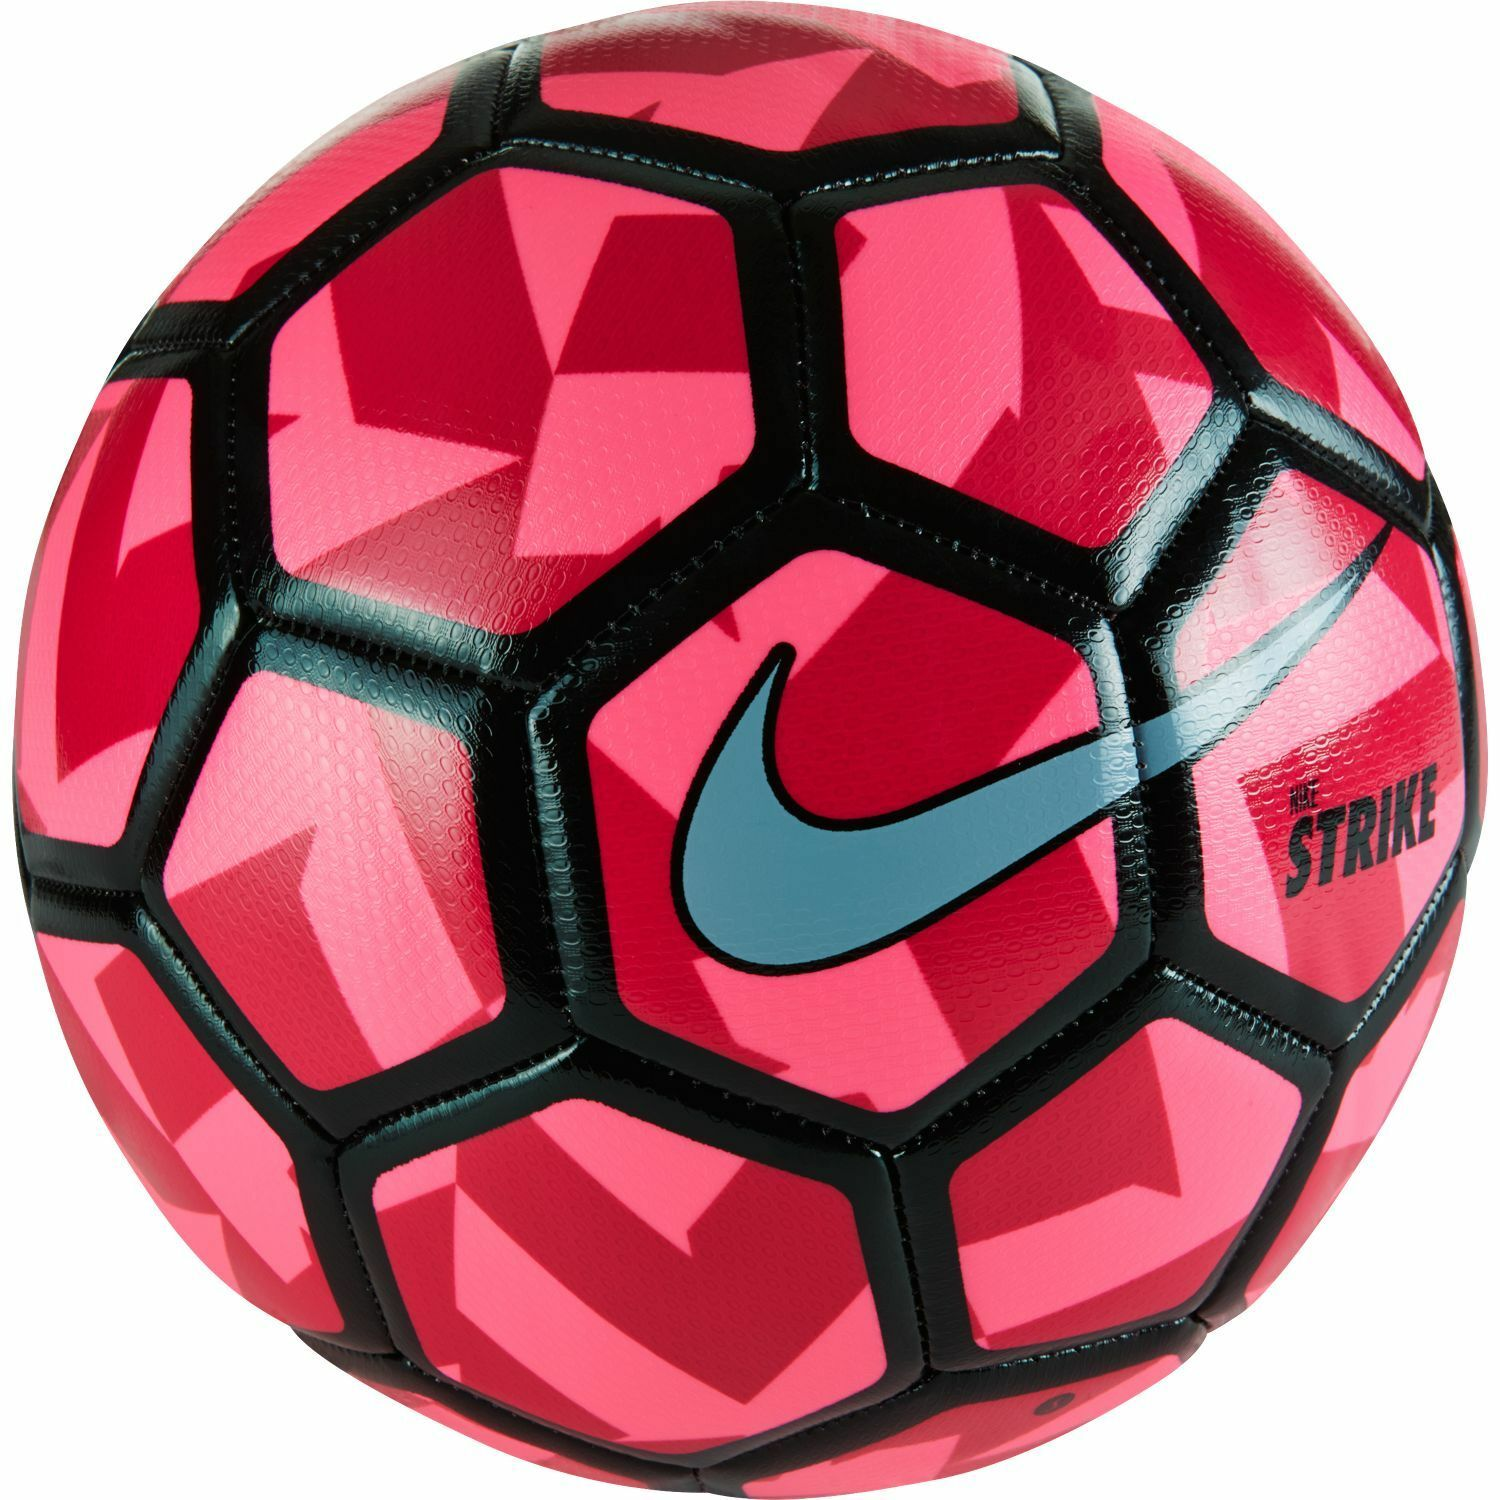 NIKE SOCCER / FOOTBALL BALL - DURO STRIKE BALL - SC2754 ...